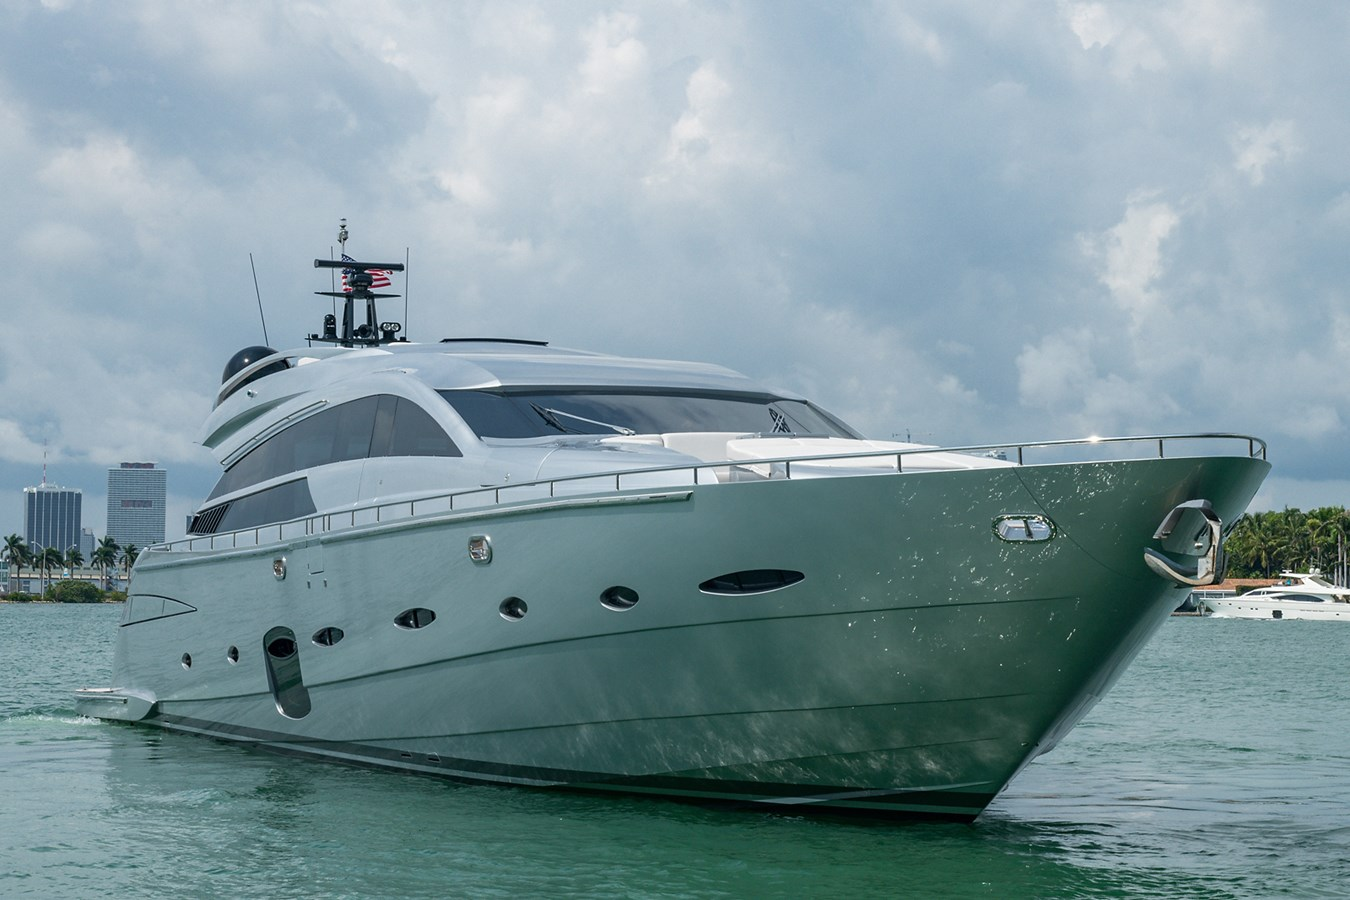 Incognito_Bow Profile4 2012 PERSHING  Motor Yacht 2810230